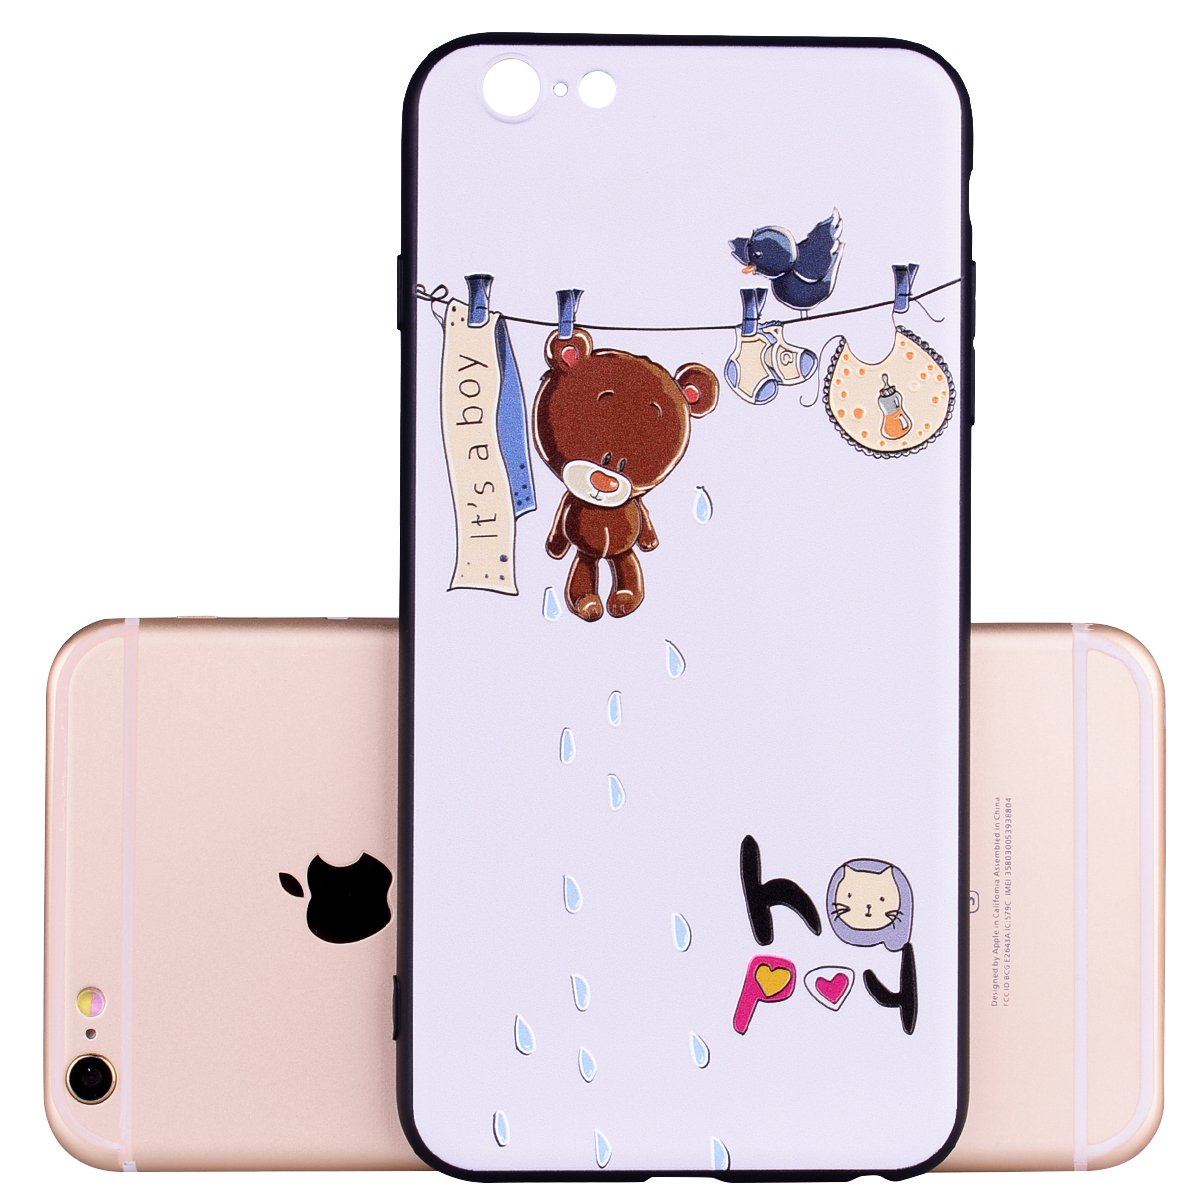 Amazon.com: ZAOX - Carcasa para iPhone 6S Plus, silicona ...